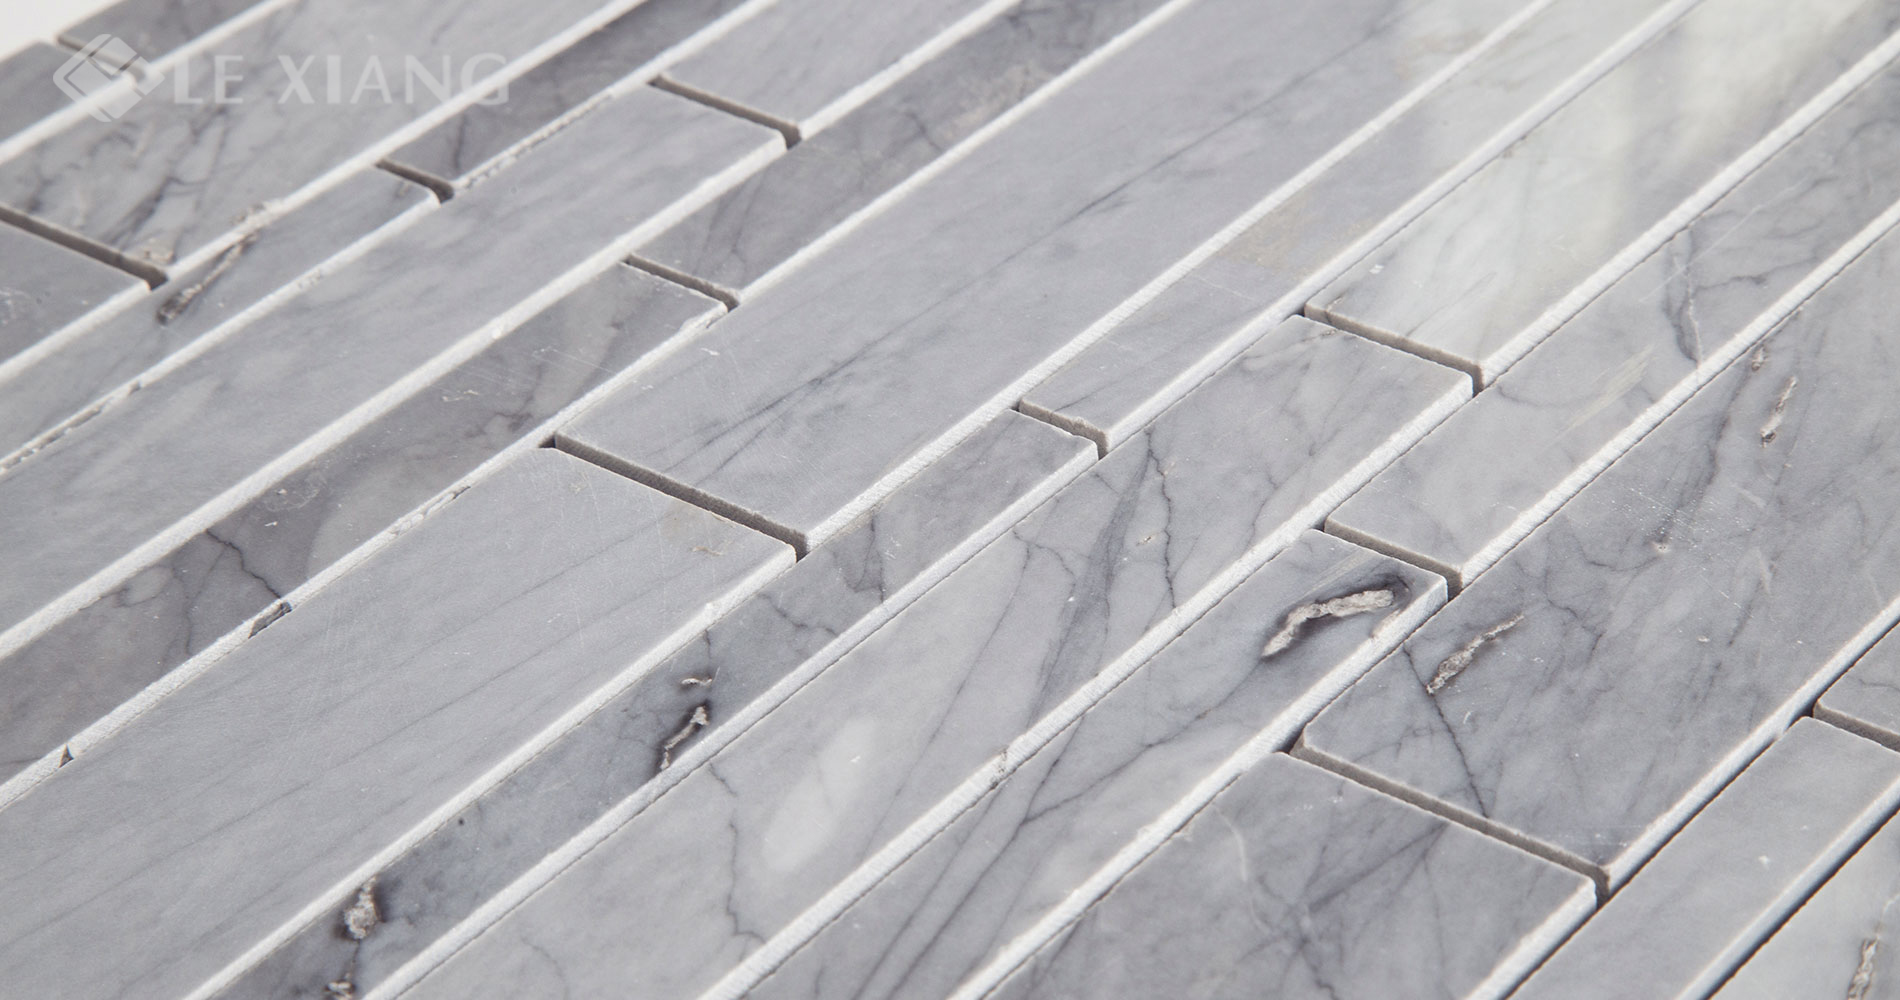 Marble-Strip-Mosaic-Tile-For-Kitchen-Backsplash-And-Bathroom-Floor-Backsplash-Wall-3-8